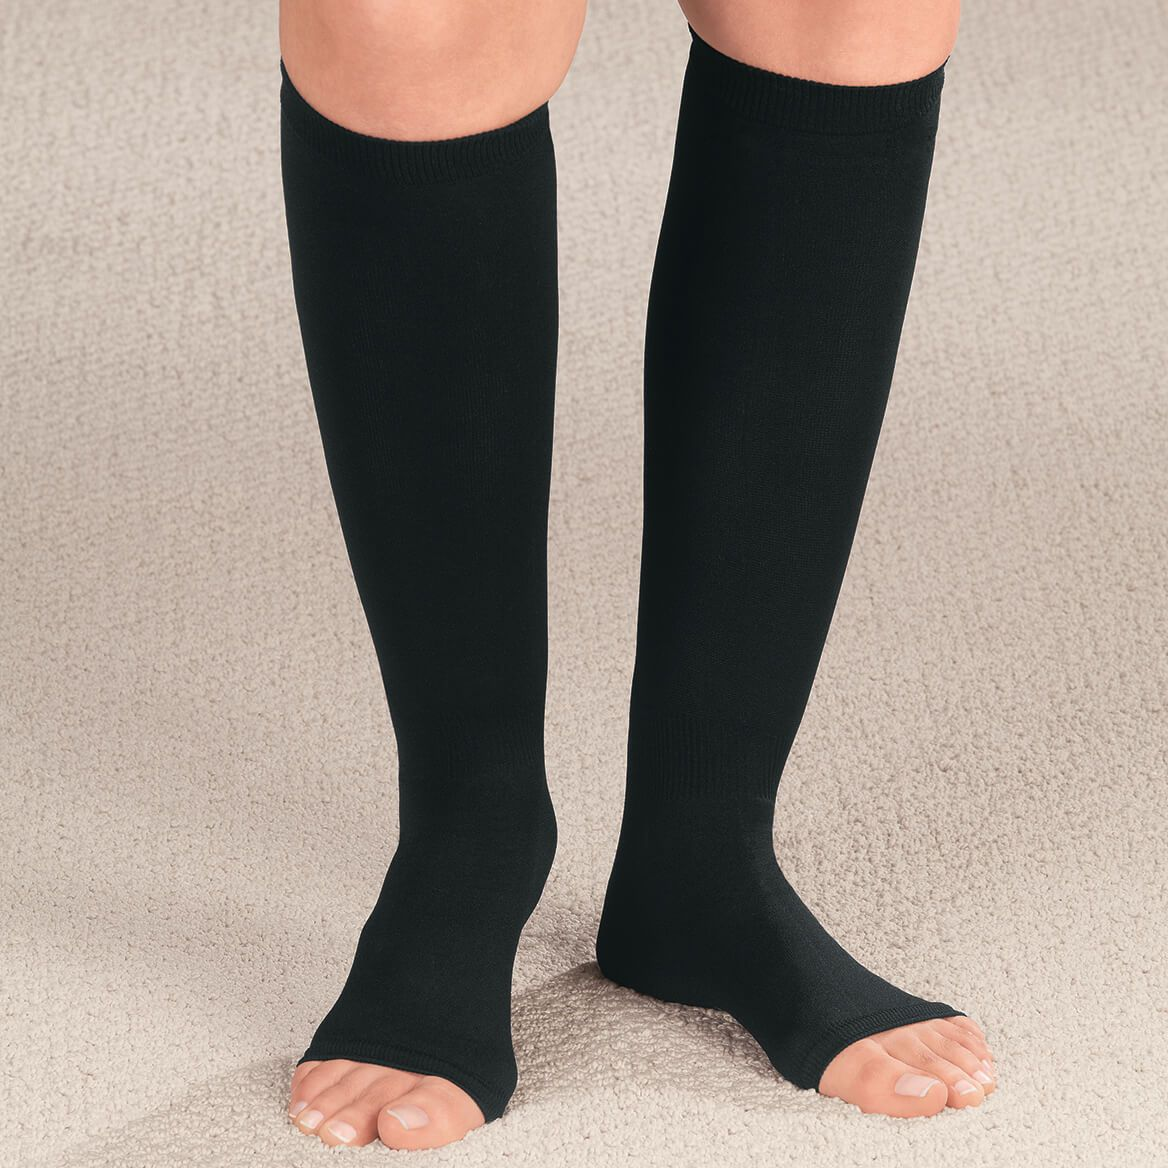 Compression Open Toe Knee Highs,  20–30 mmHg-349170